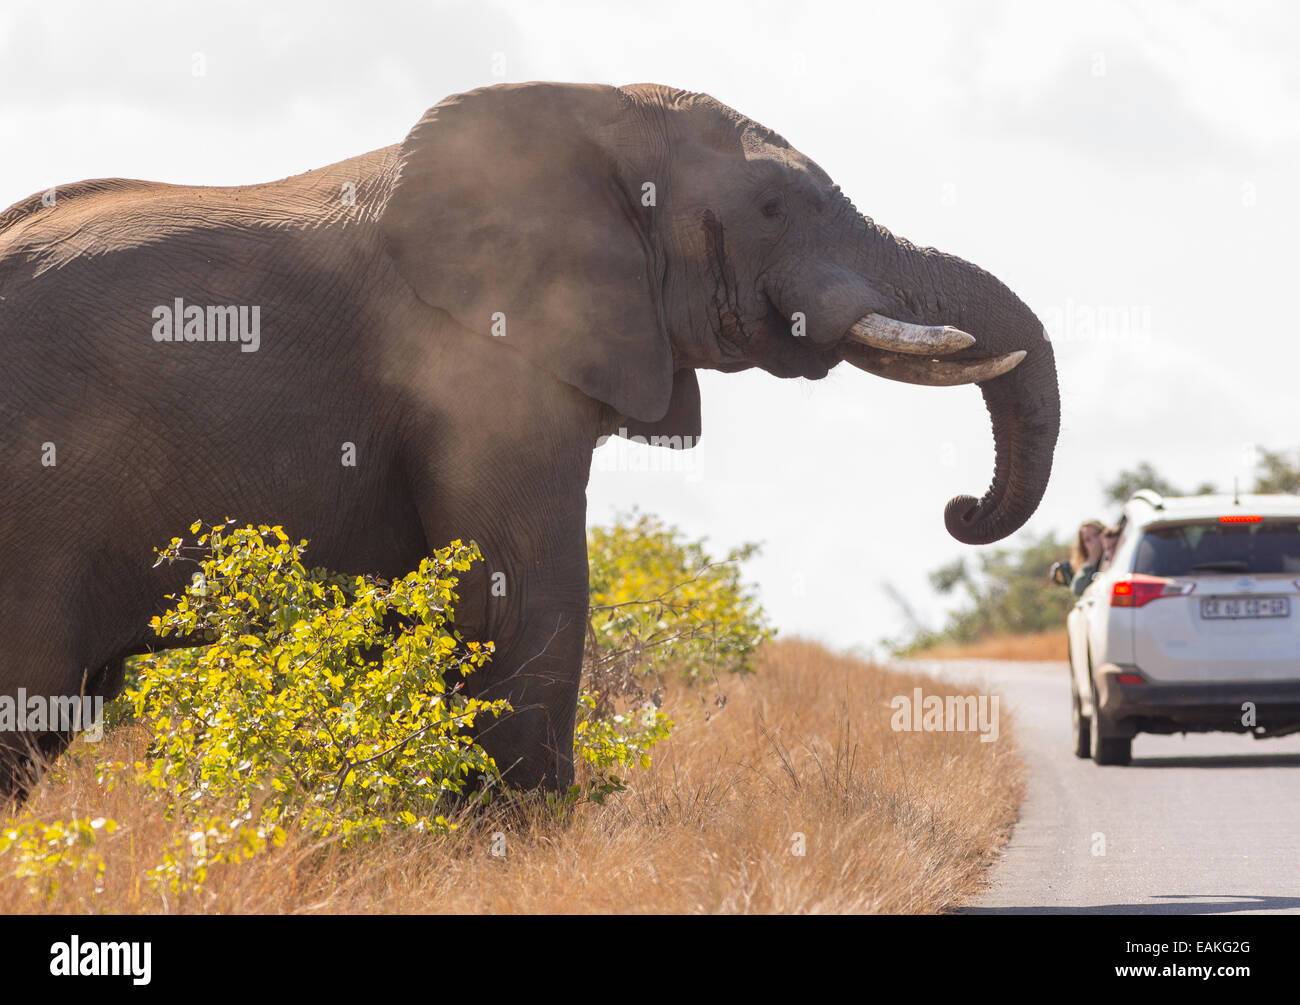 KRUGER NATIONAL PARK, SOUTH AFRICA - Elephant approaches road with car. - Stock Image